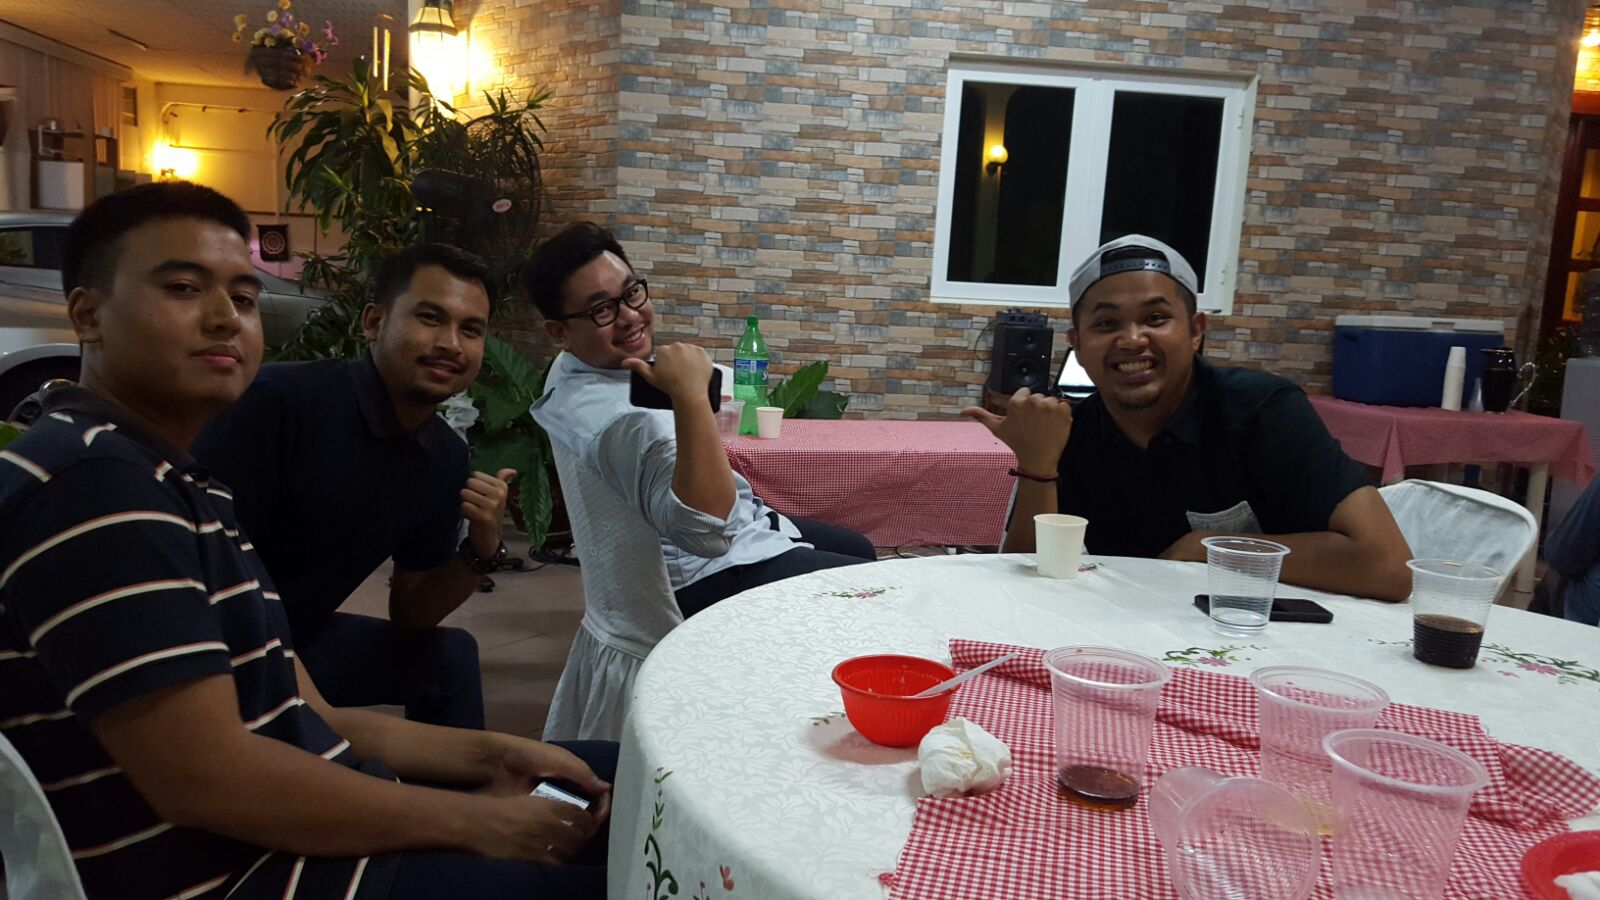 """From L-R: Zed Peace, Apai, Kro and Khaos. During the little """"listening party"""". There were more people around :P"""